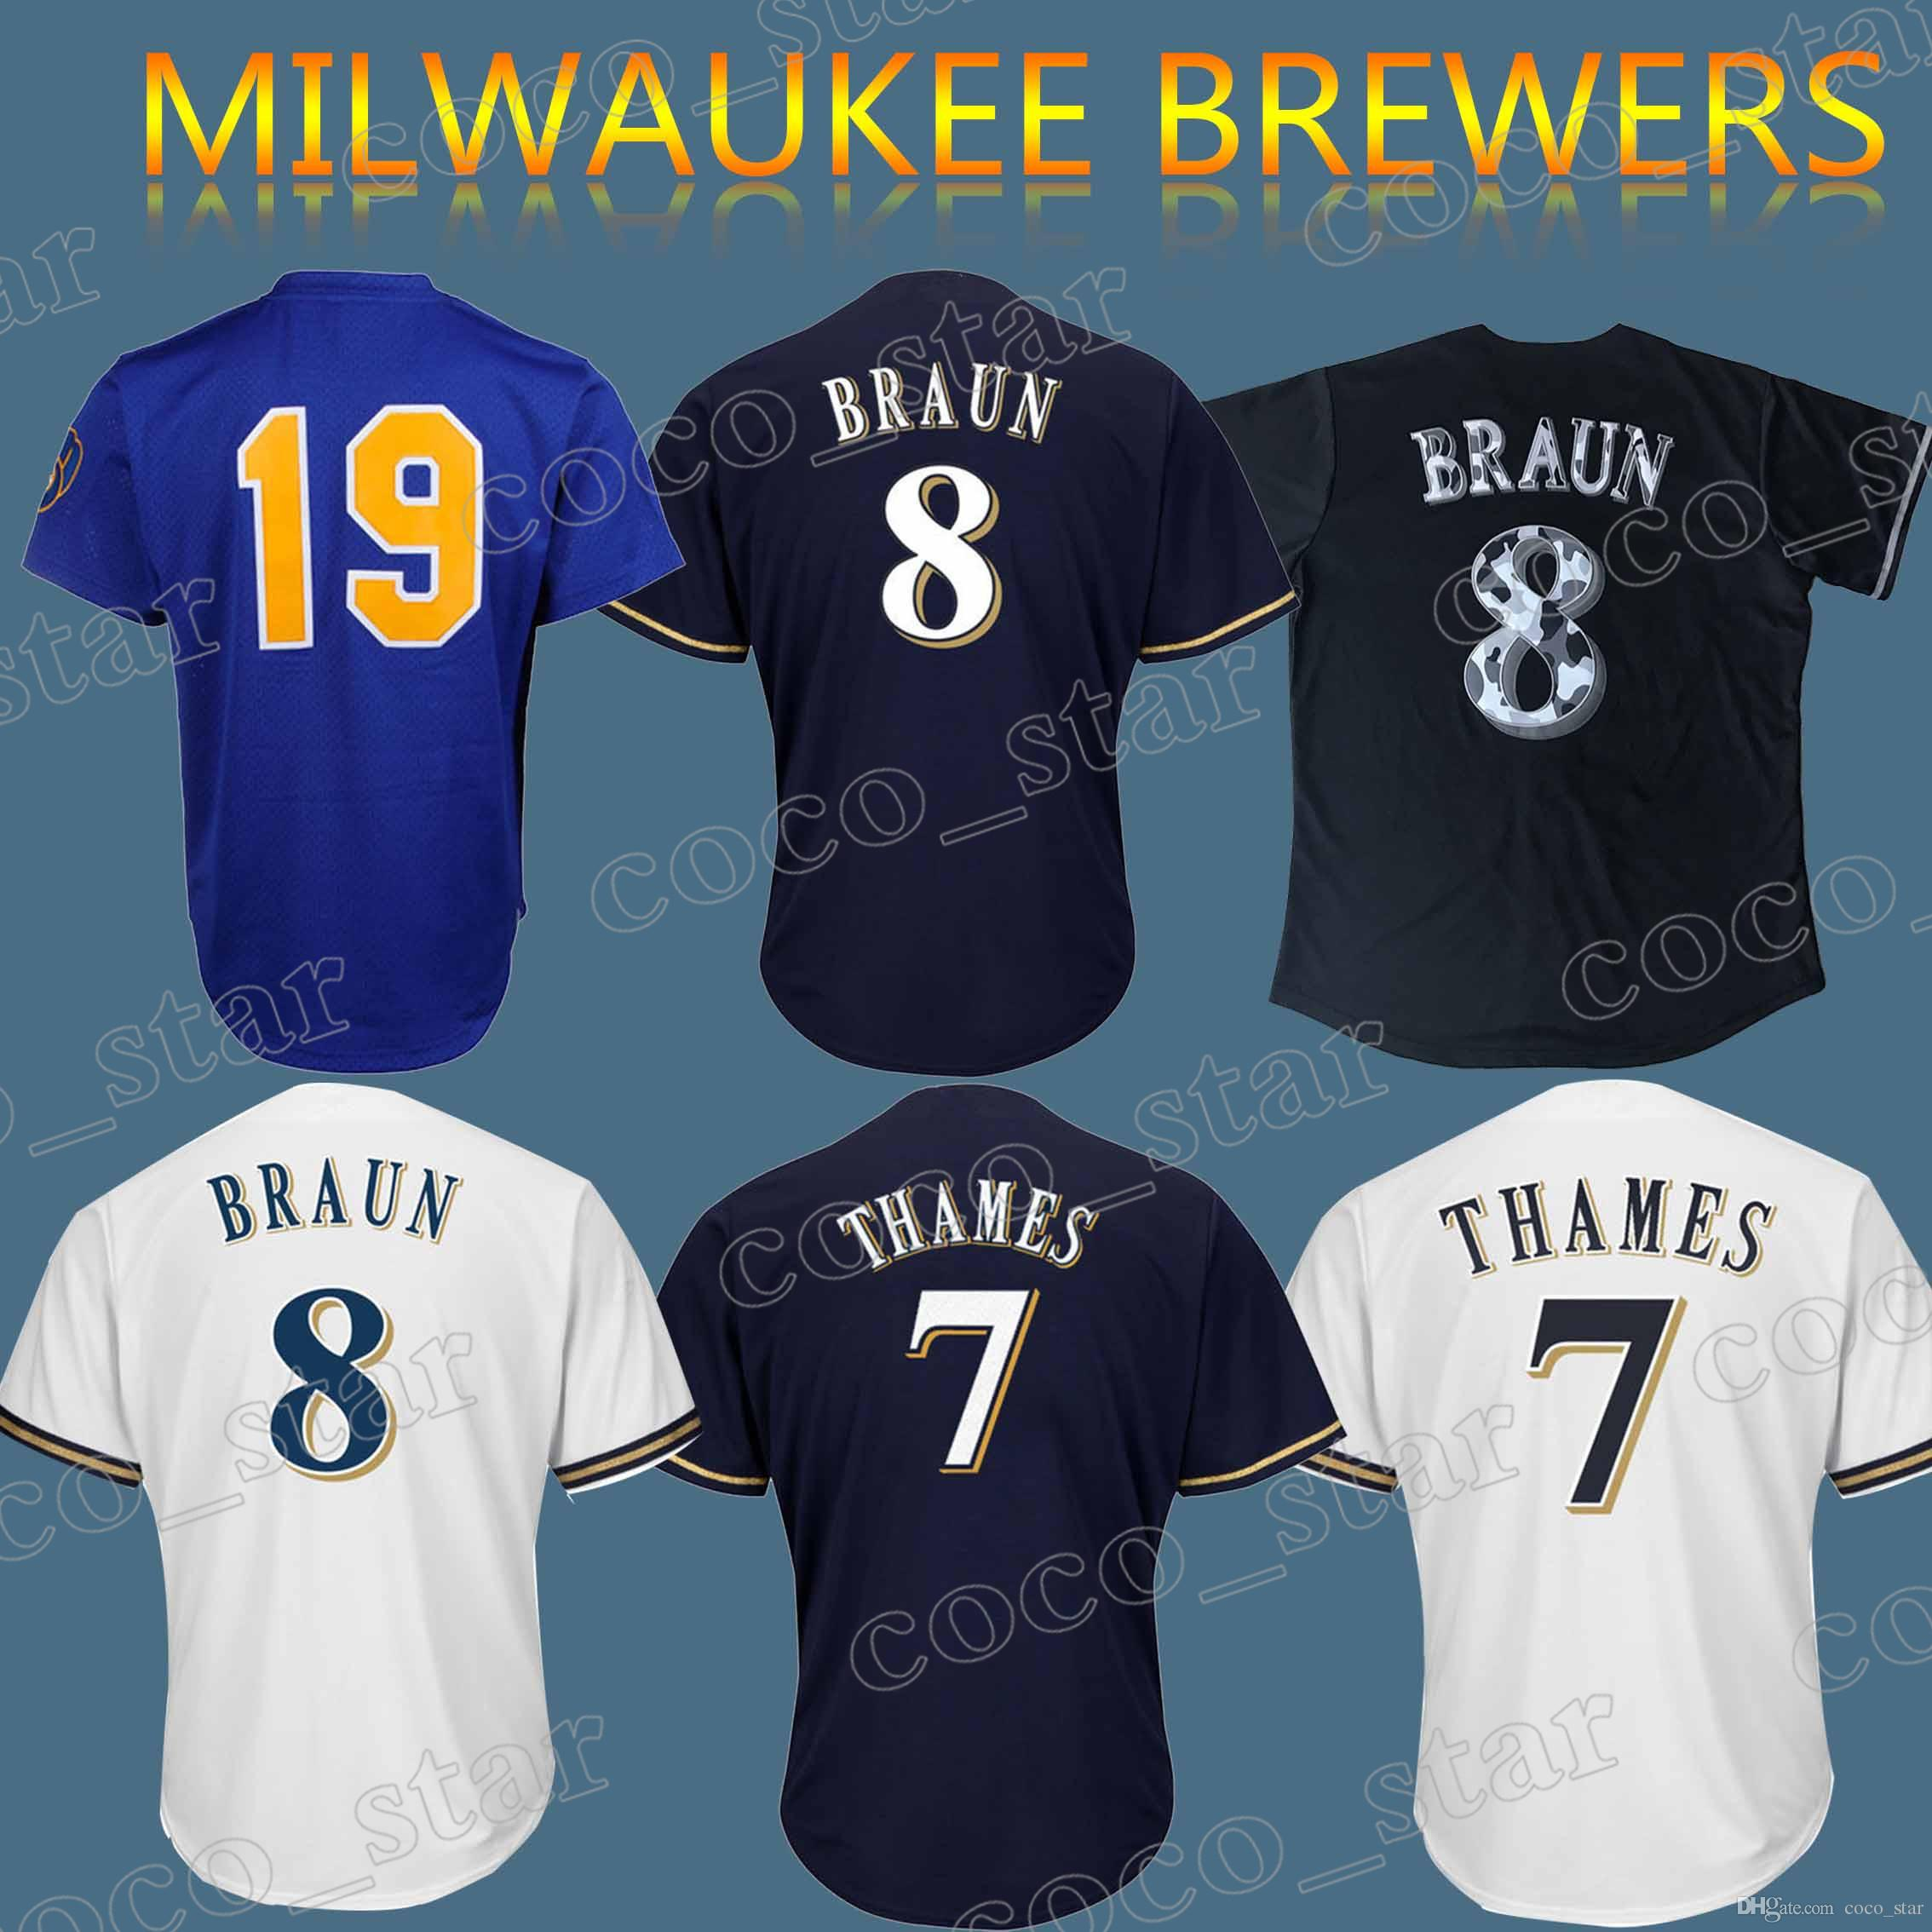 sports shoes 591bc 0a47f new arrivals milwaukee brewers jersey font 4595c bba6d